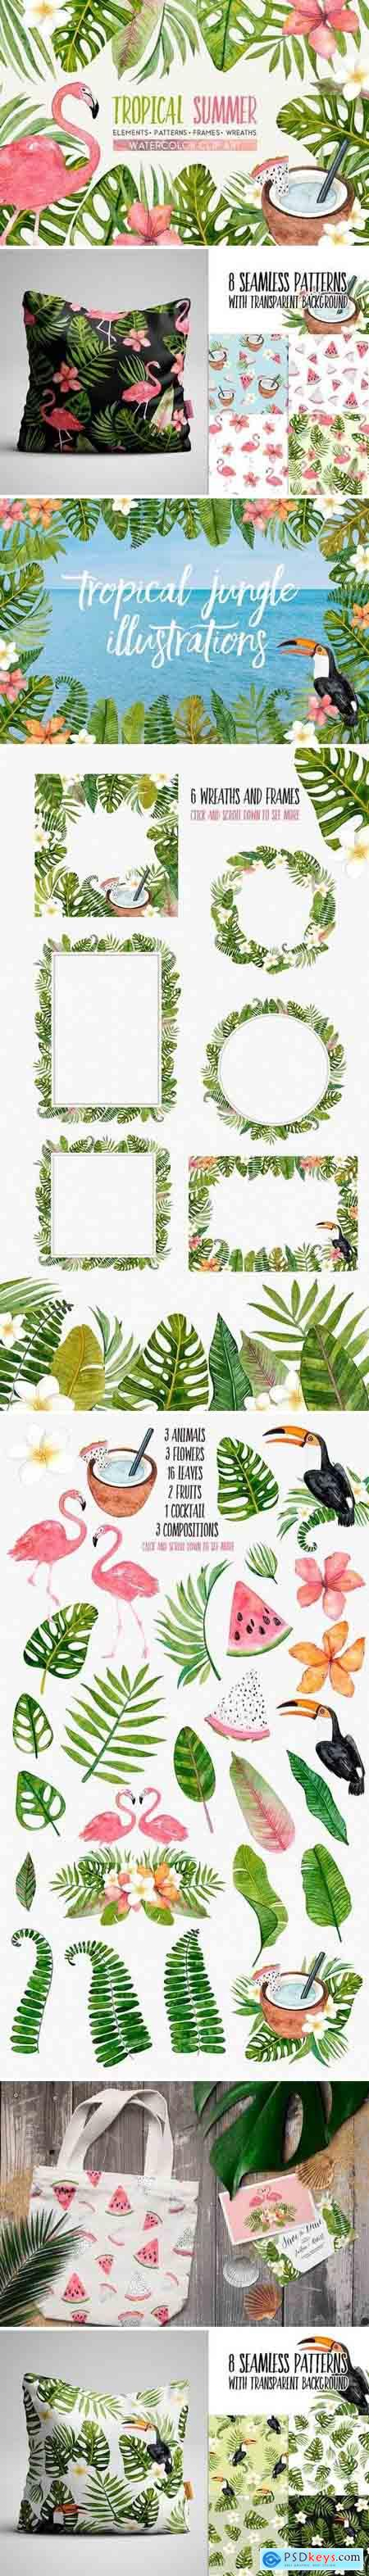 Creativemarket TROPICAL SUMMER watercolor set